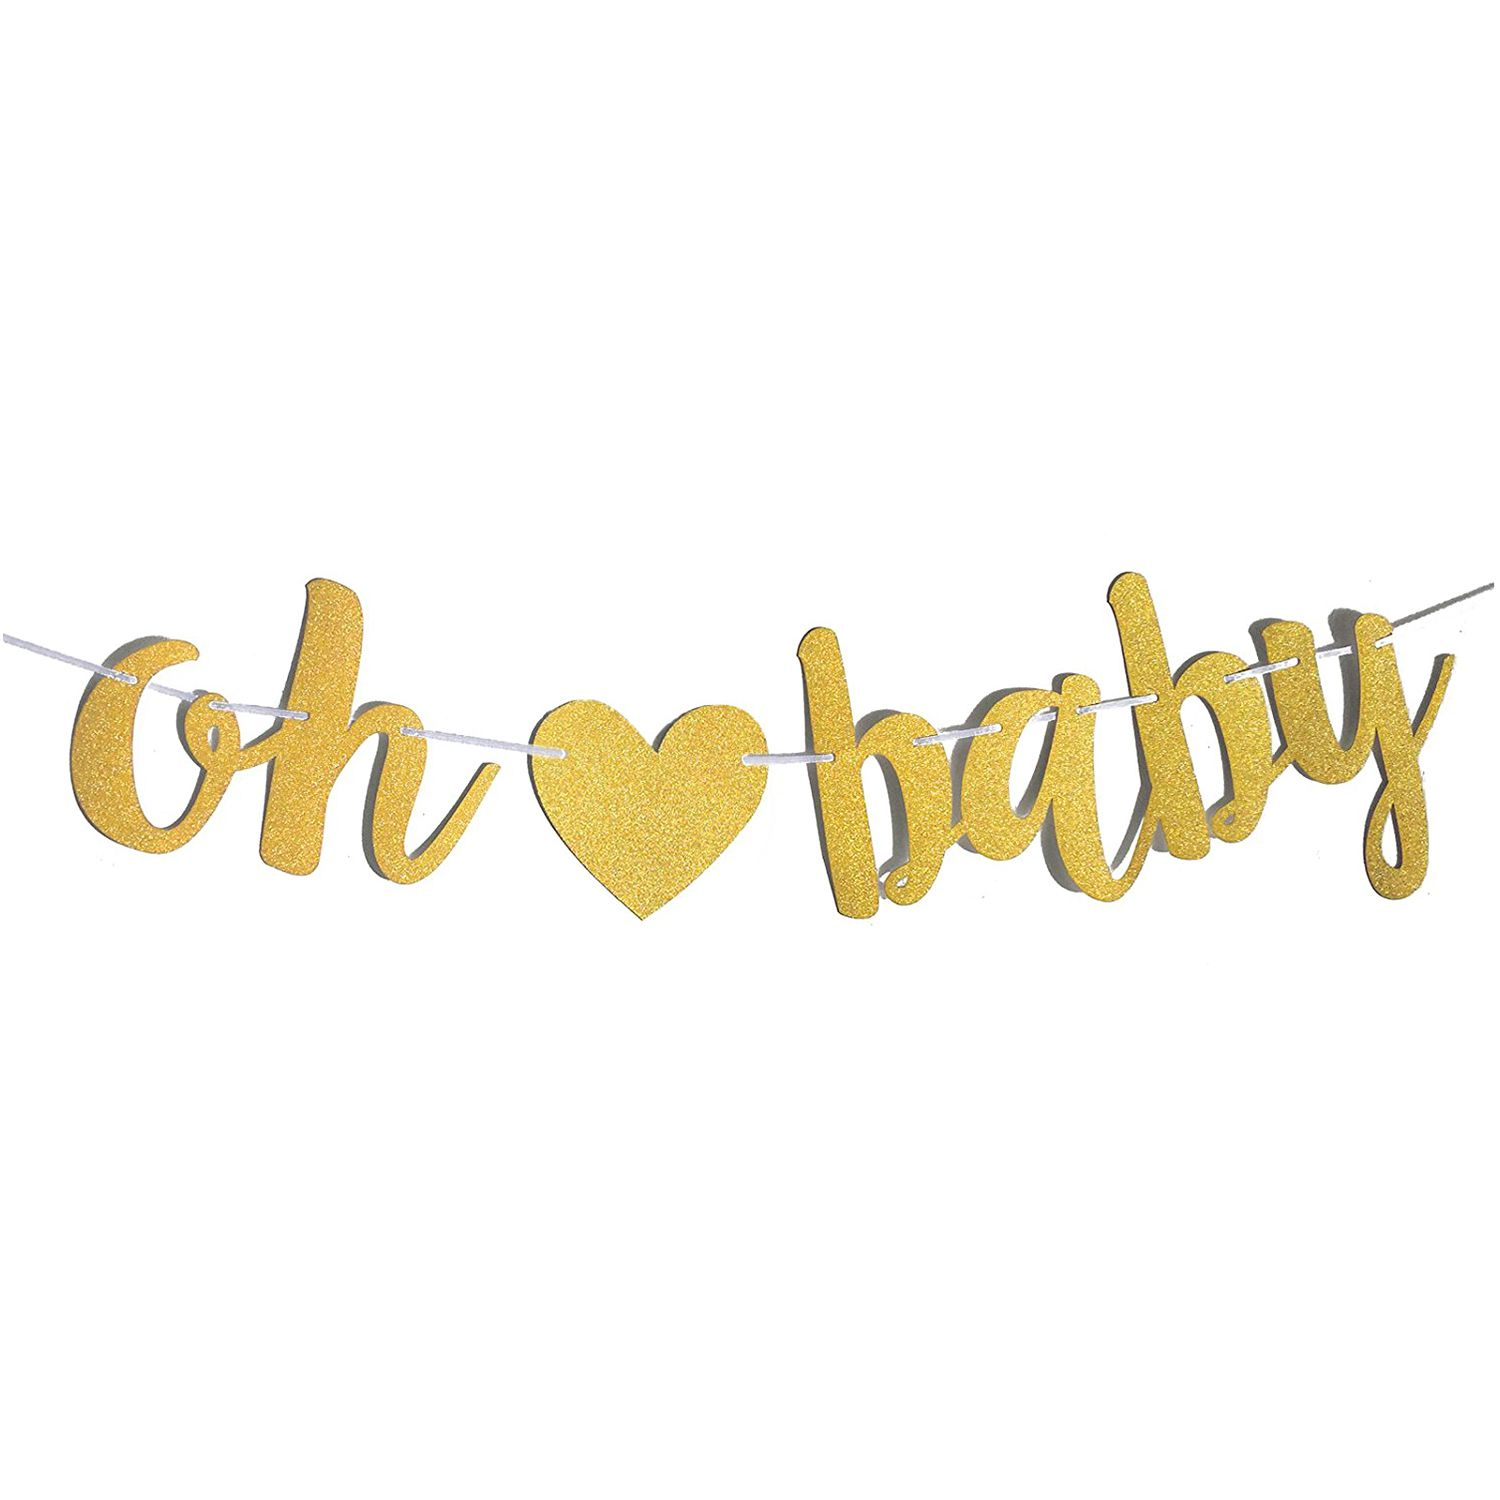 HOT SALE Gold Glittery Letters OH BABY With Heart Banner for Baby shower